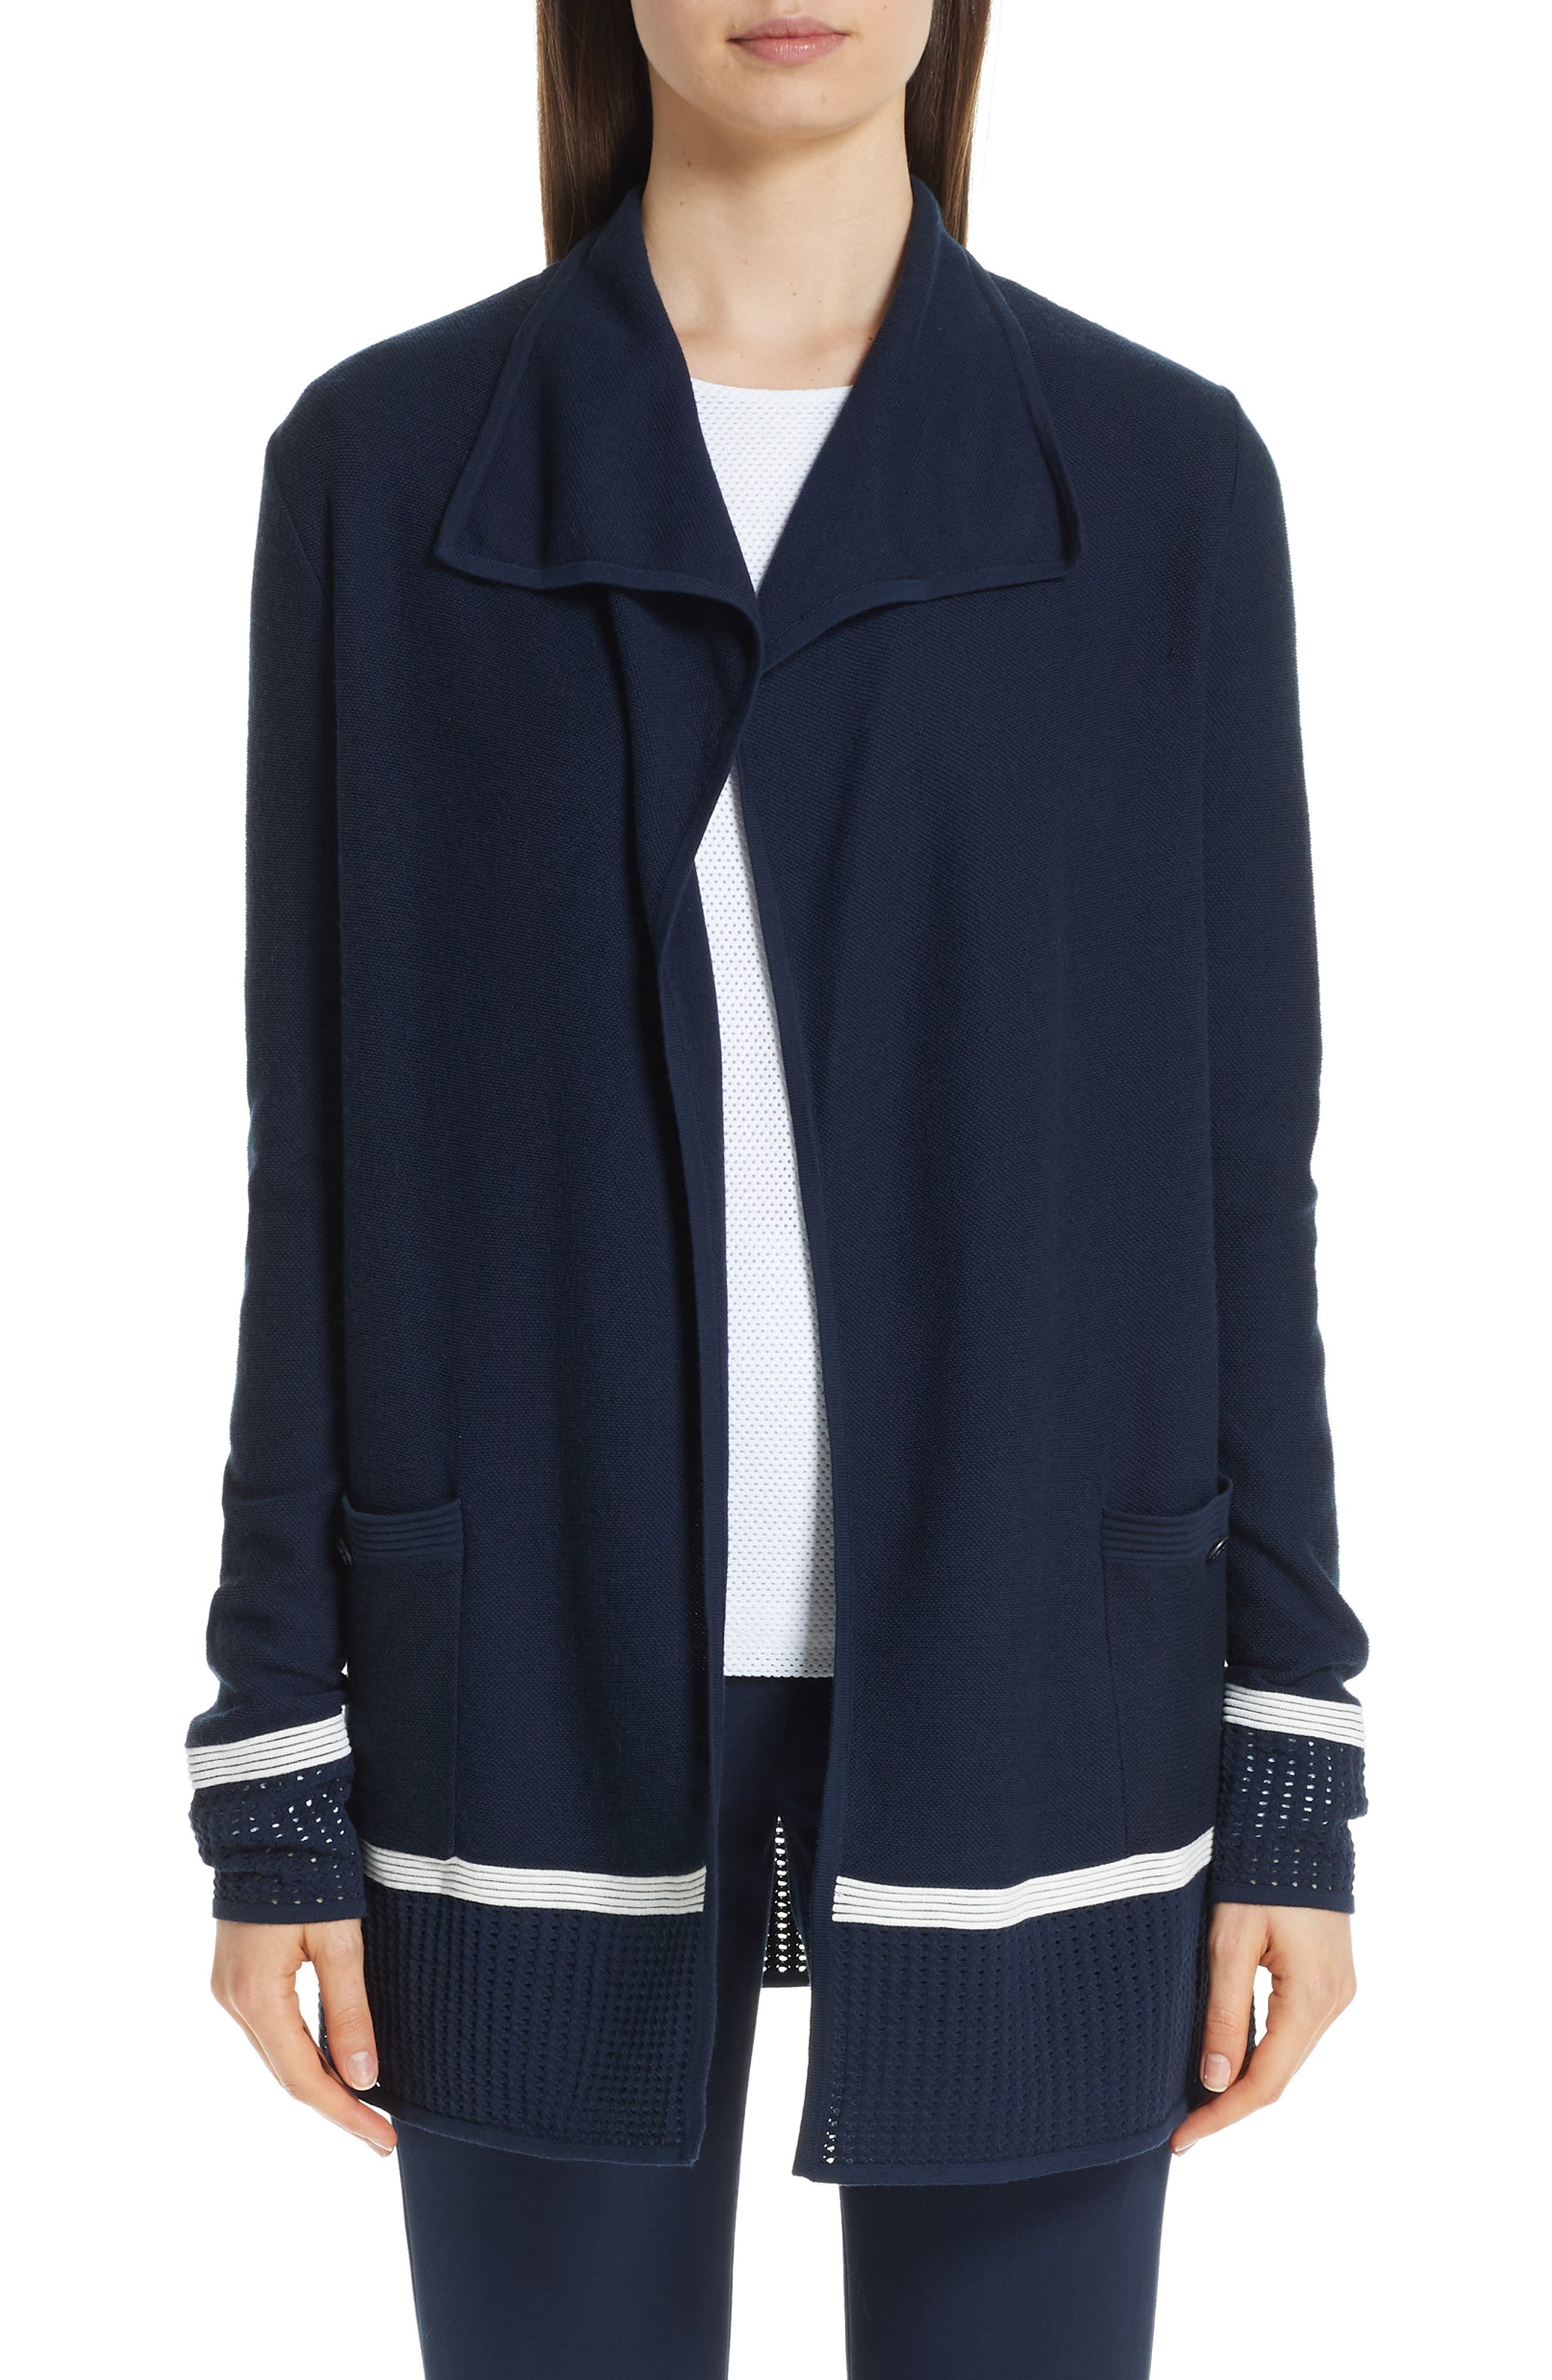 ST. JOHN COLLECTION Mesh Trim Cardigan, Main, color, NAVY/ CREAM